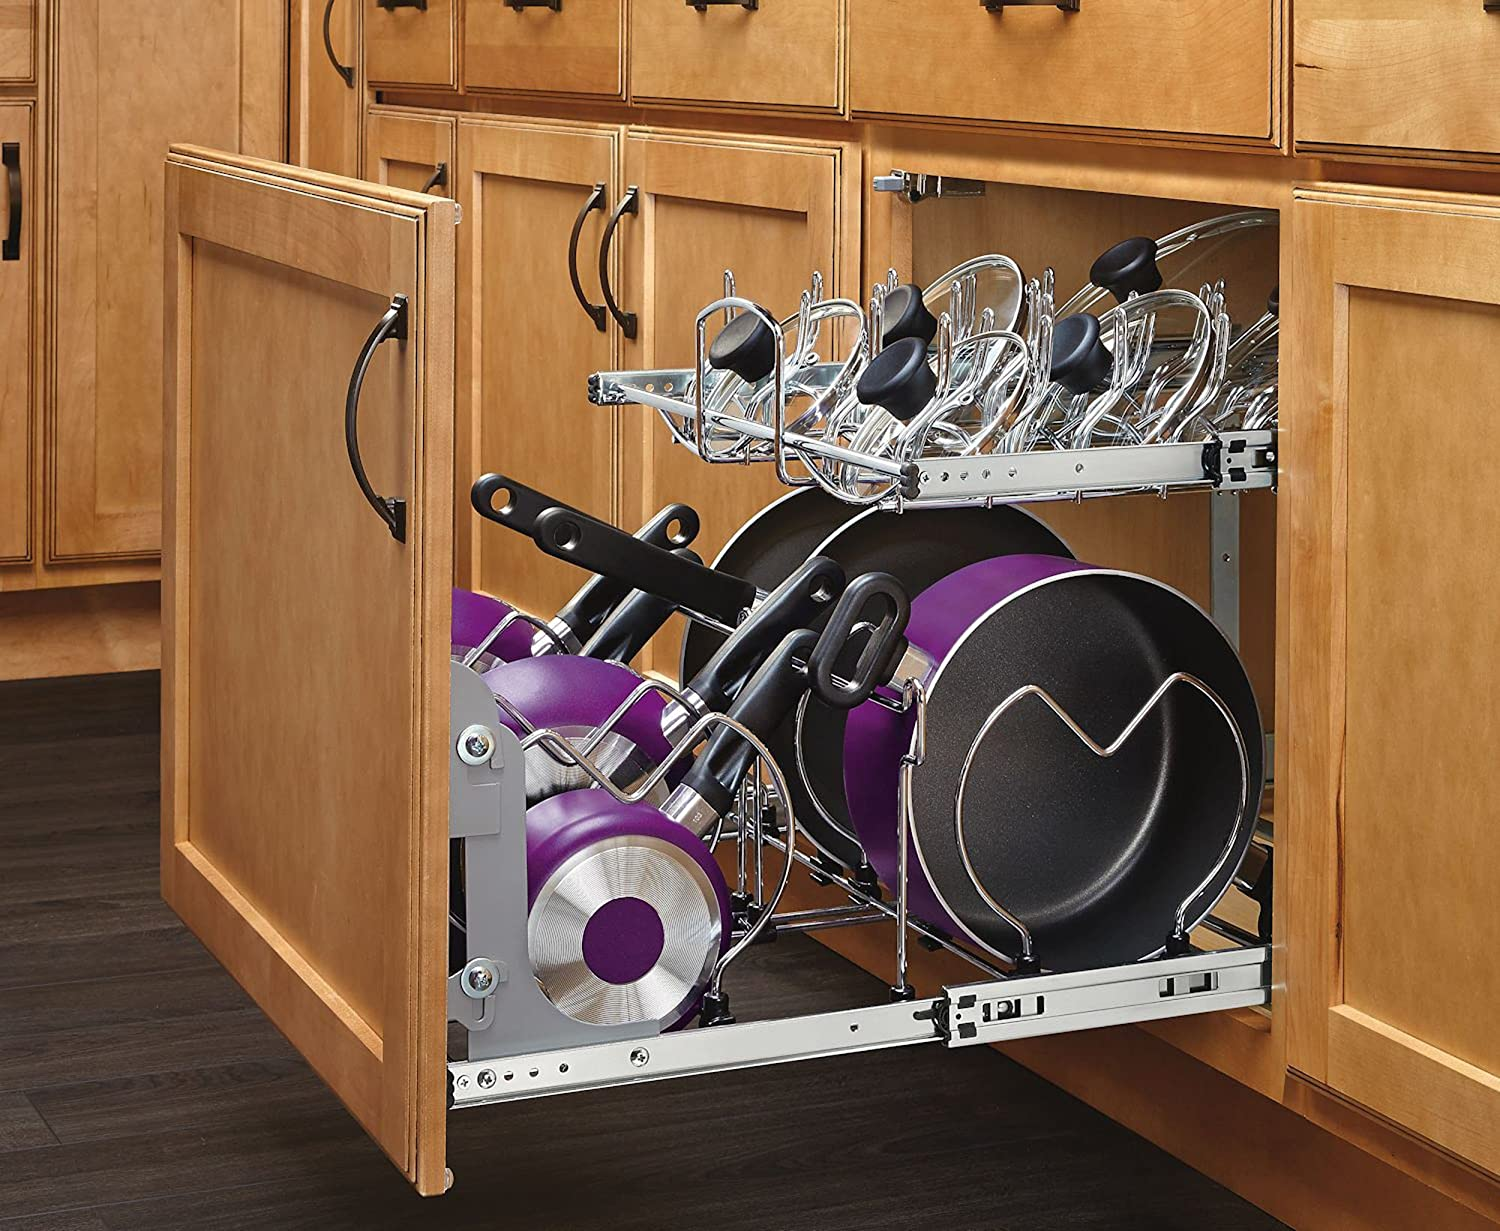 Kitchen Storage For Pots And Pans Amazoncom Rev A Shelf 5cw2 2122 Cr 21 In Pull Out 2 Tier